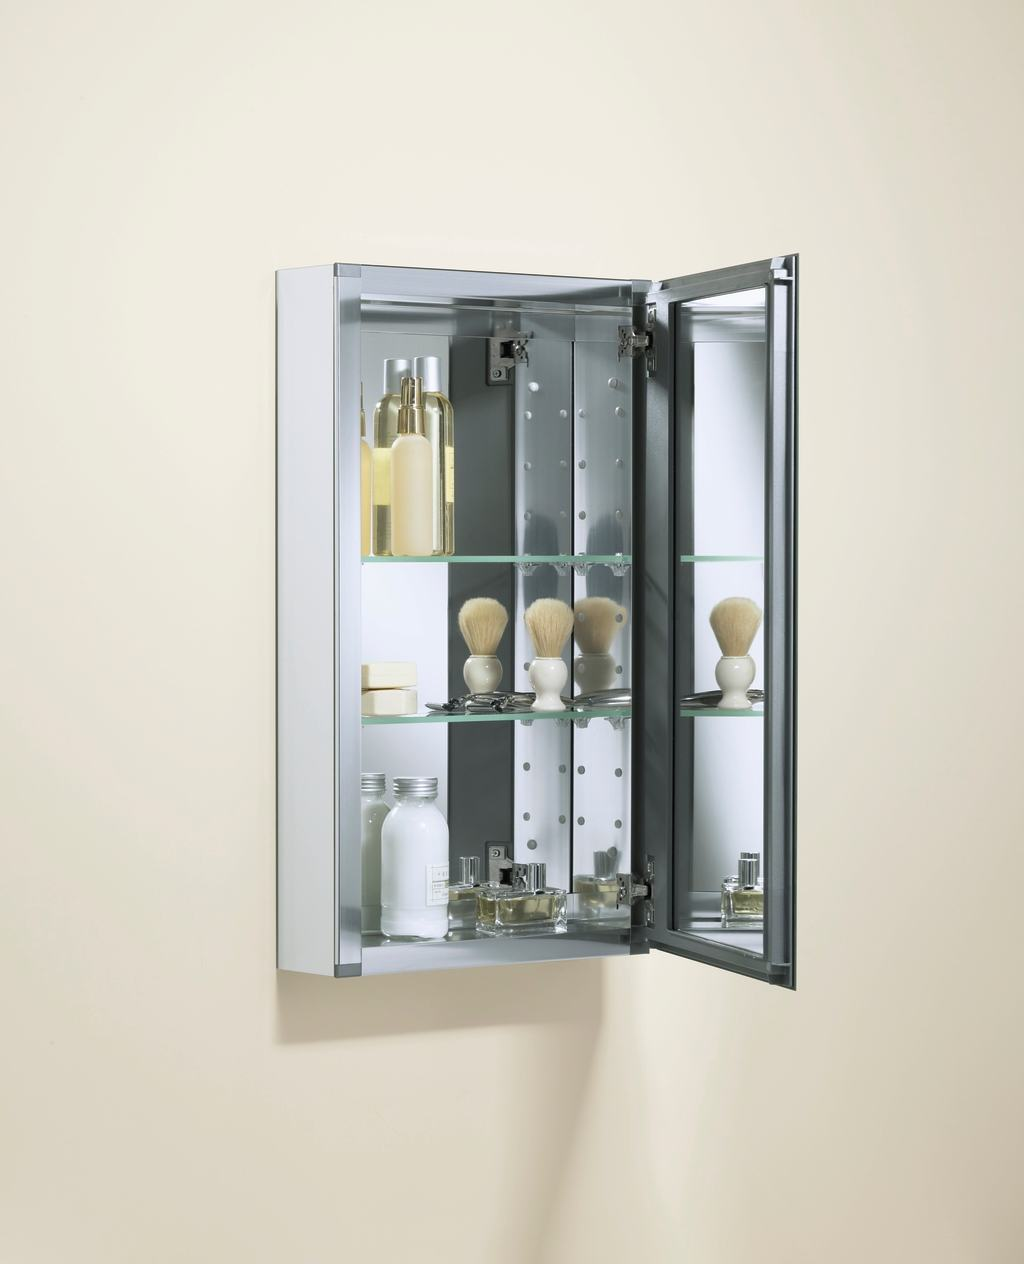 single door mirrored frameless cabinet adds stylish storage view